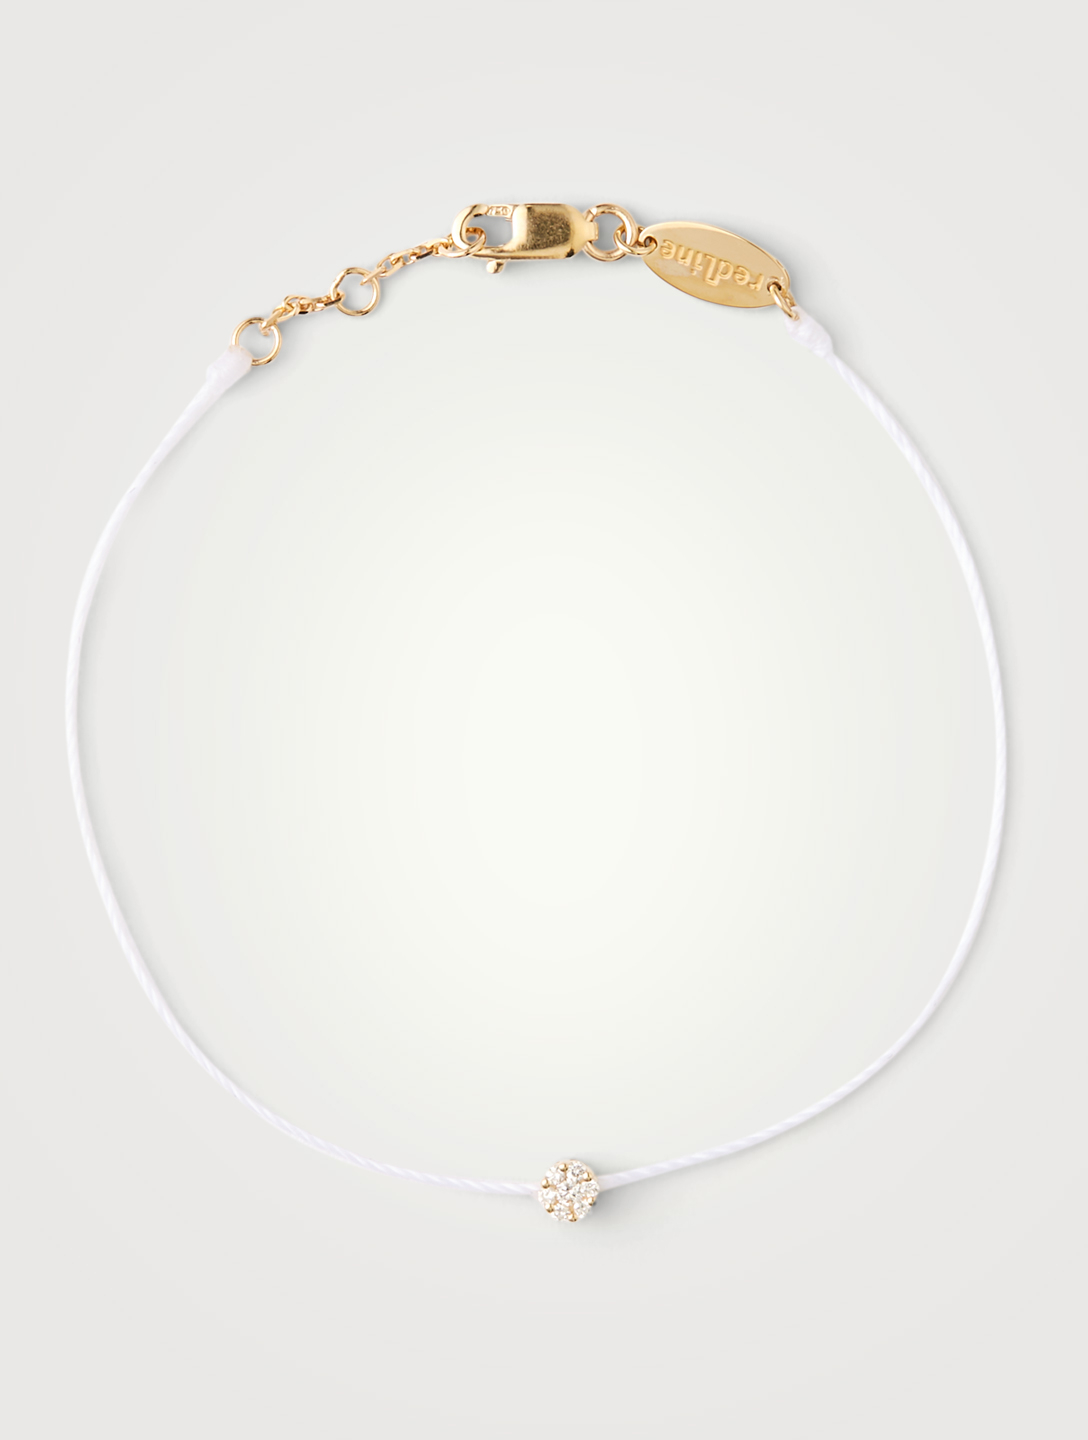 REDLINE Bracelet fil Illusion en or 18 ct avec diamants Femmes Blanc